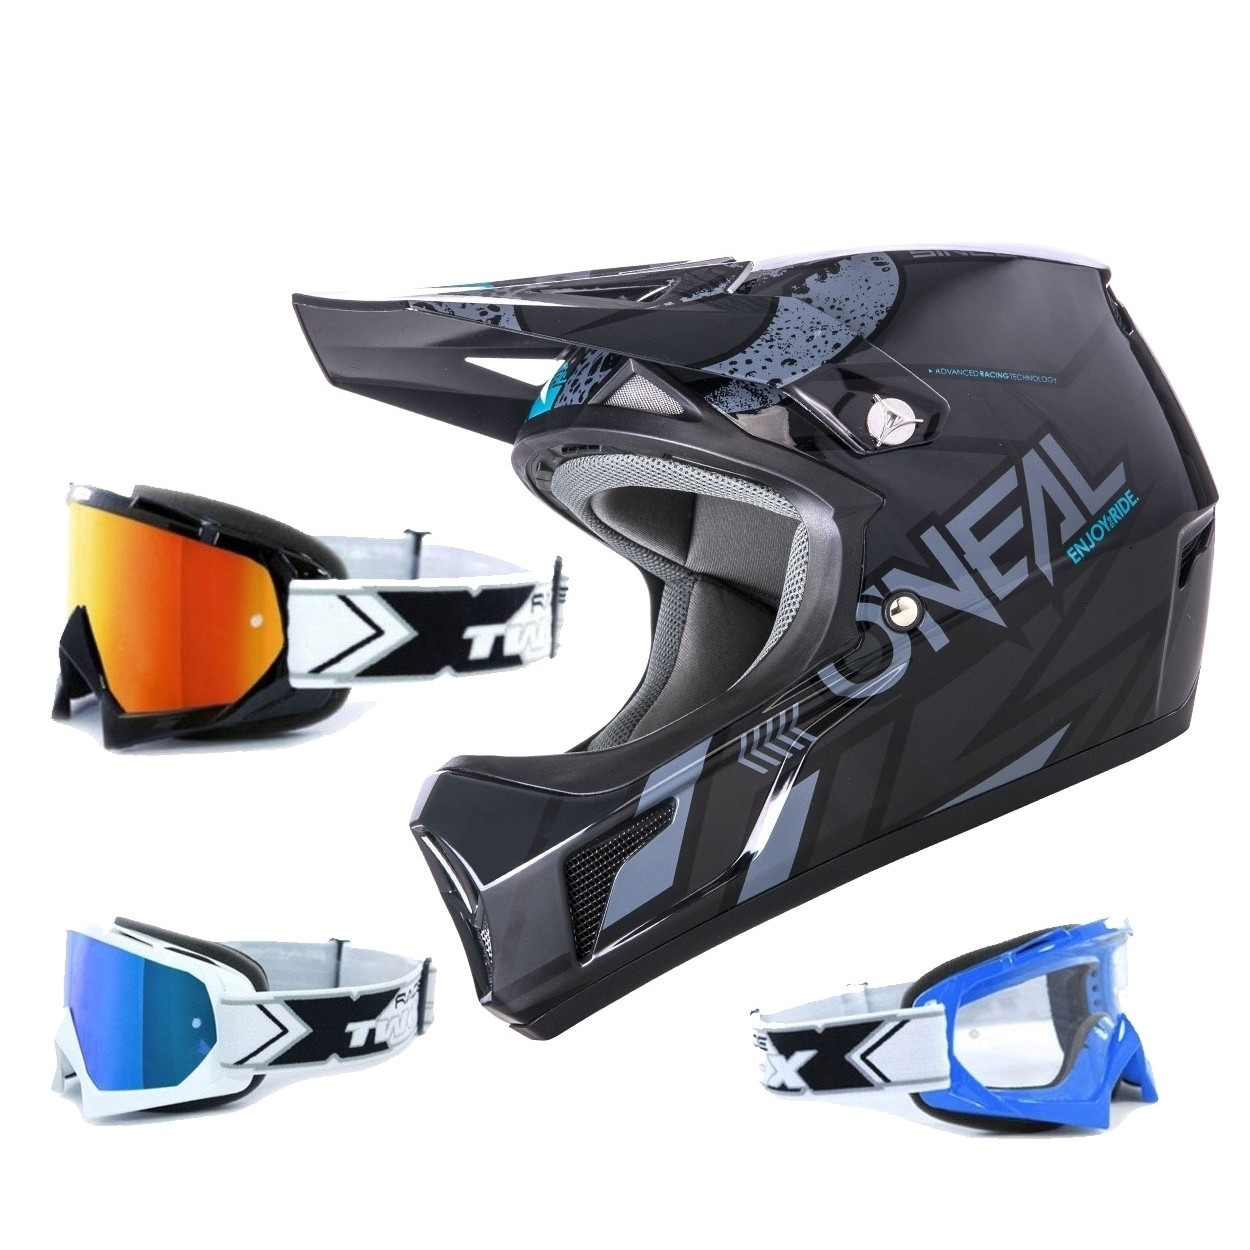 oneal sonus strike mtb helm schwarz grau mit two x brille. Black Bedroom Furniture Sets. Home Design Ideas